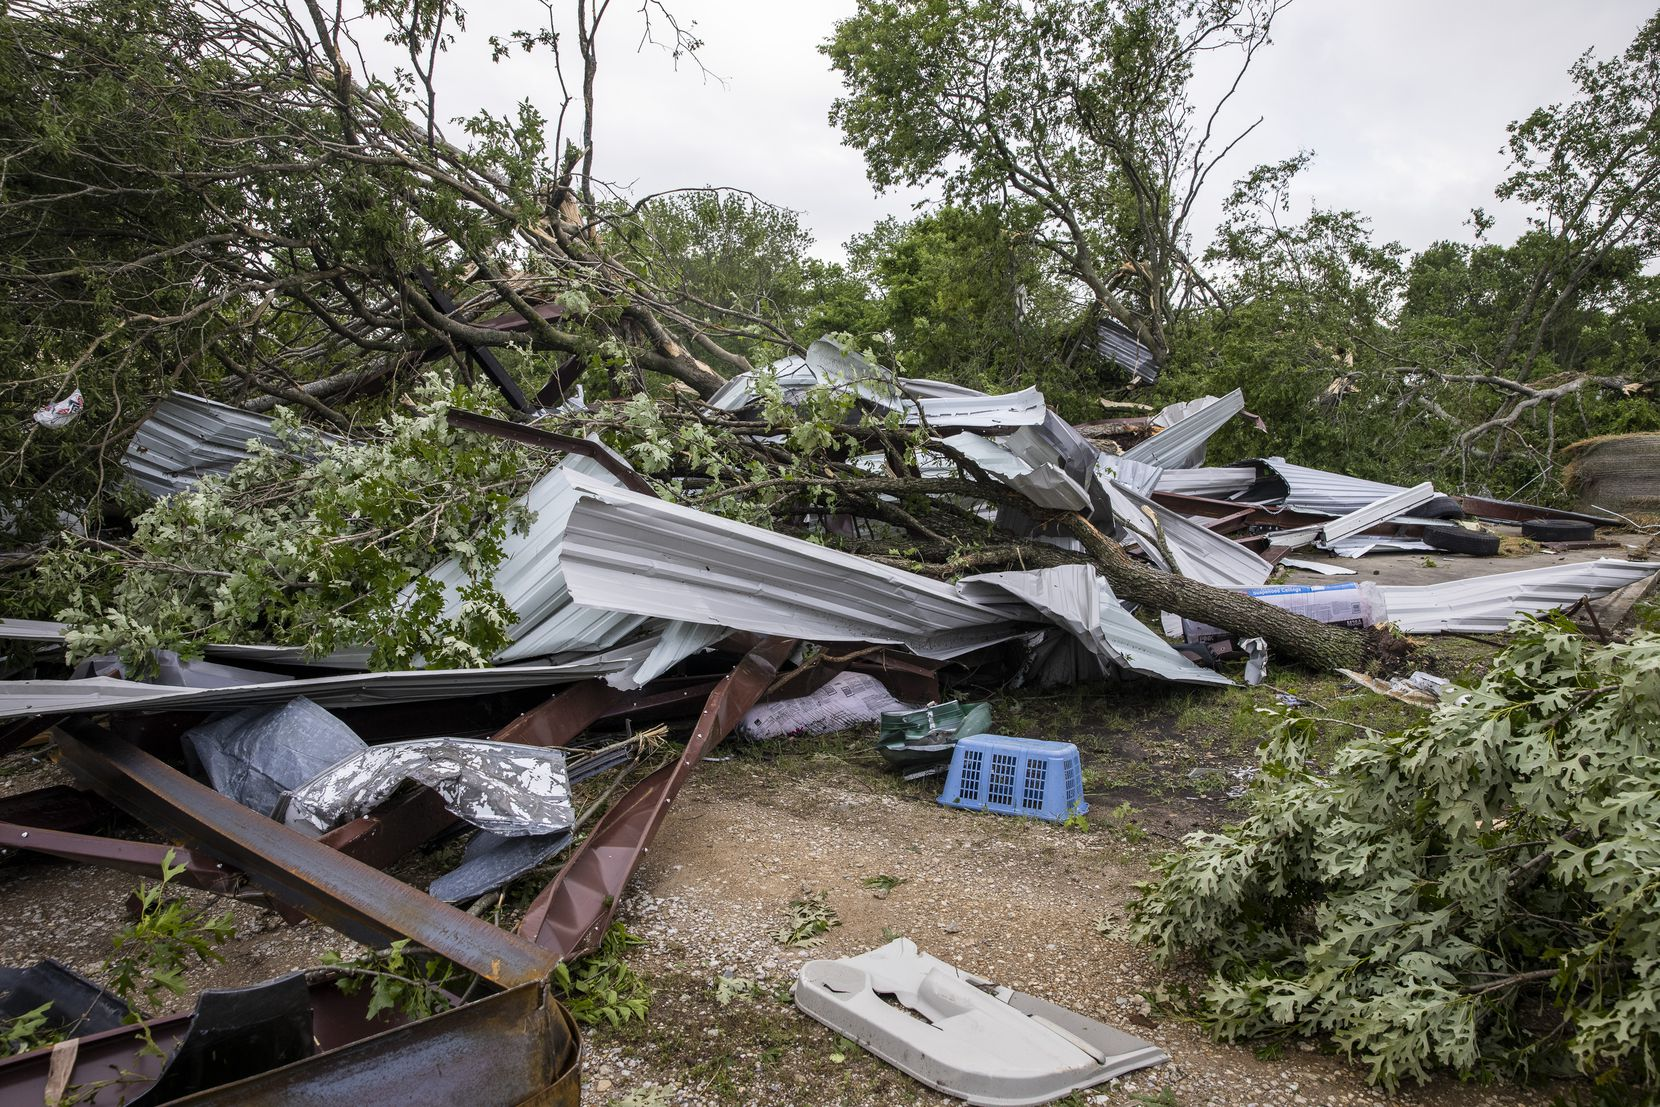 The detritus of an auto parts shop landed across the road in a neighbor's property in the aftermath of a Monday night tornado that touched down just south of Waxahachie, Texas, on Tuesday, May 4, 2021. (Lynda M. González/The Dallas Morning News)